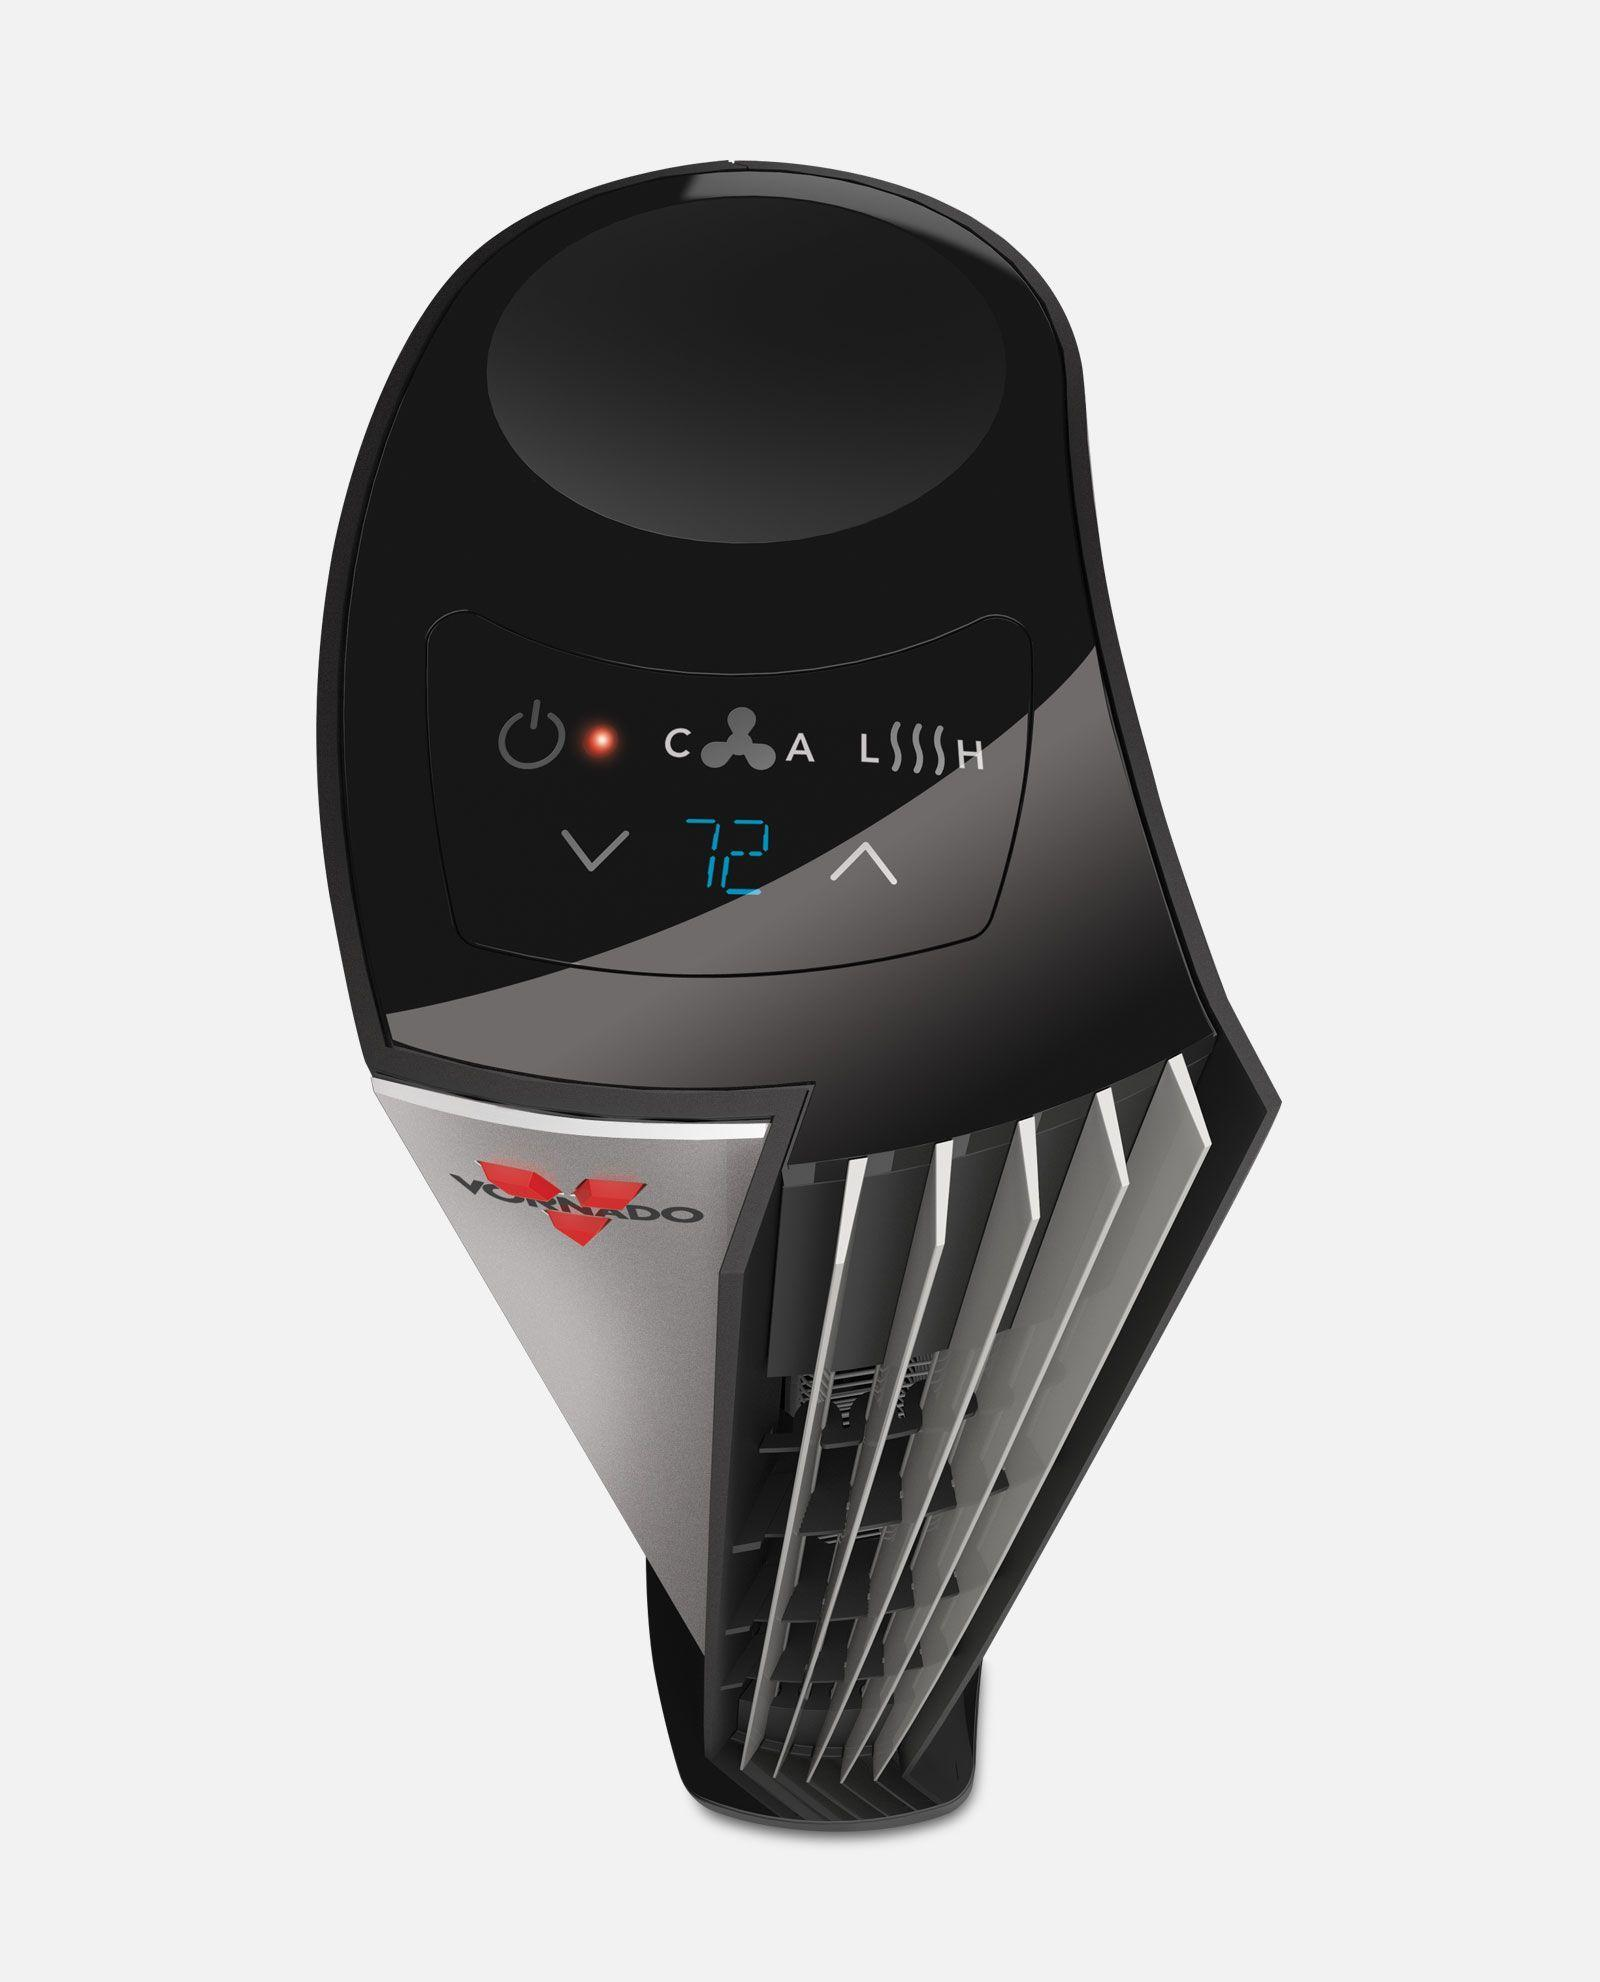 ath1 whole room tower heater auto climate vornado vornado ath1 whole room tower heater auto climate controls